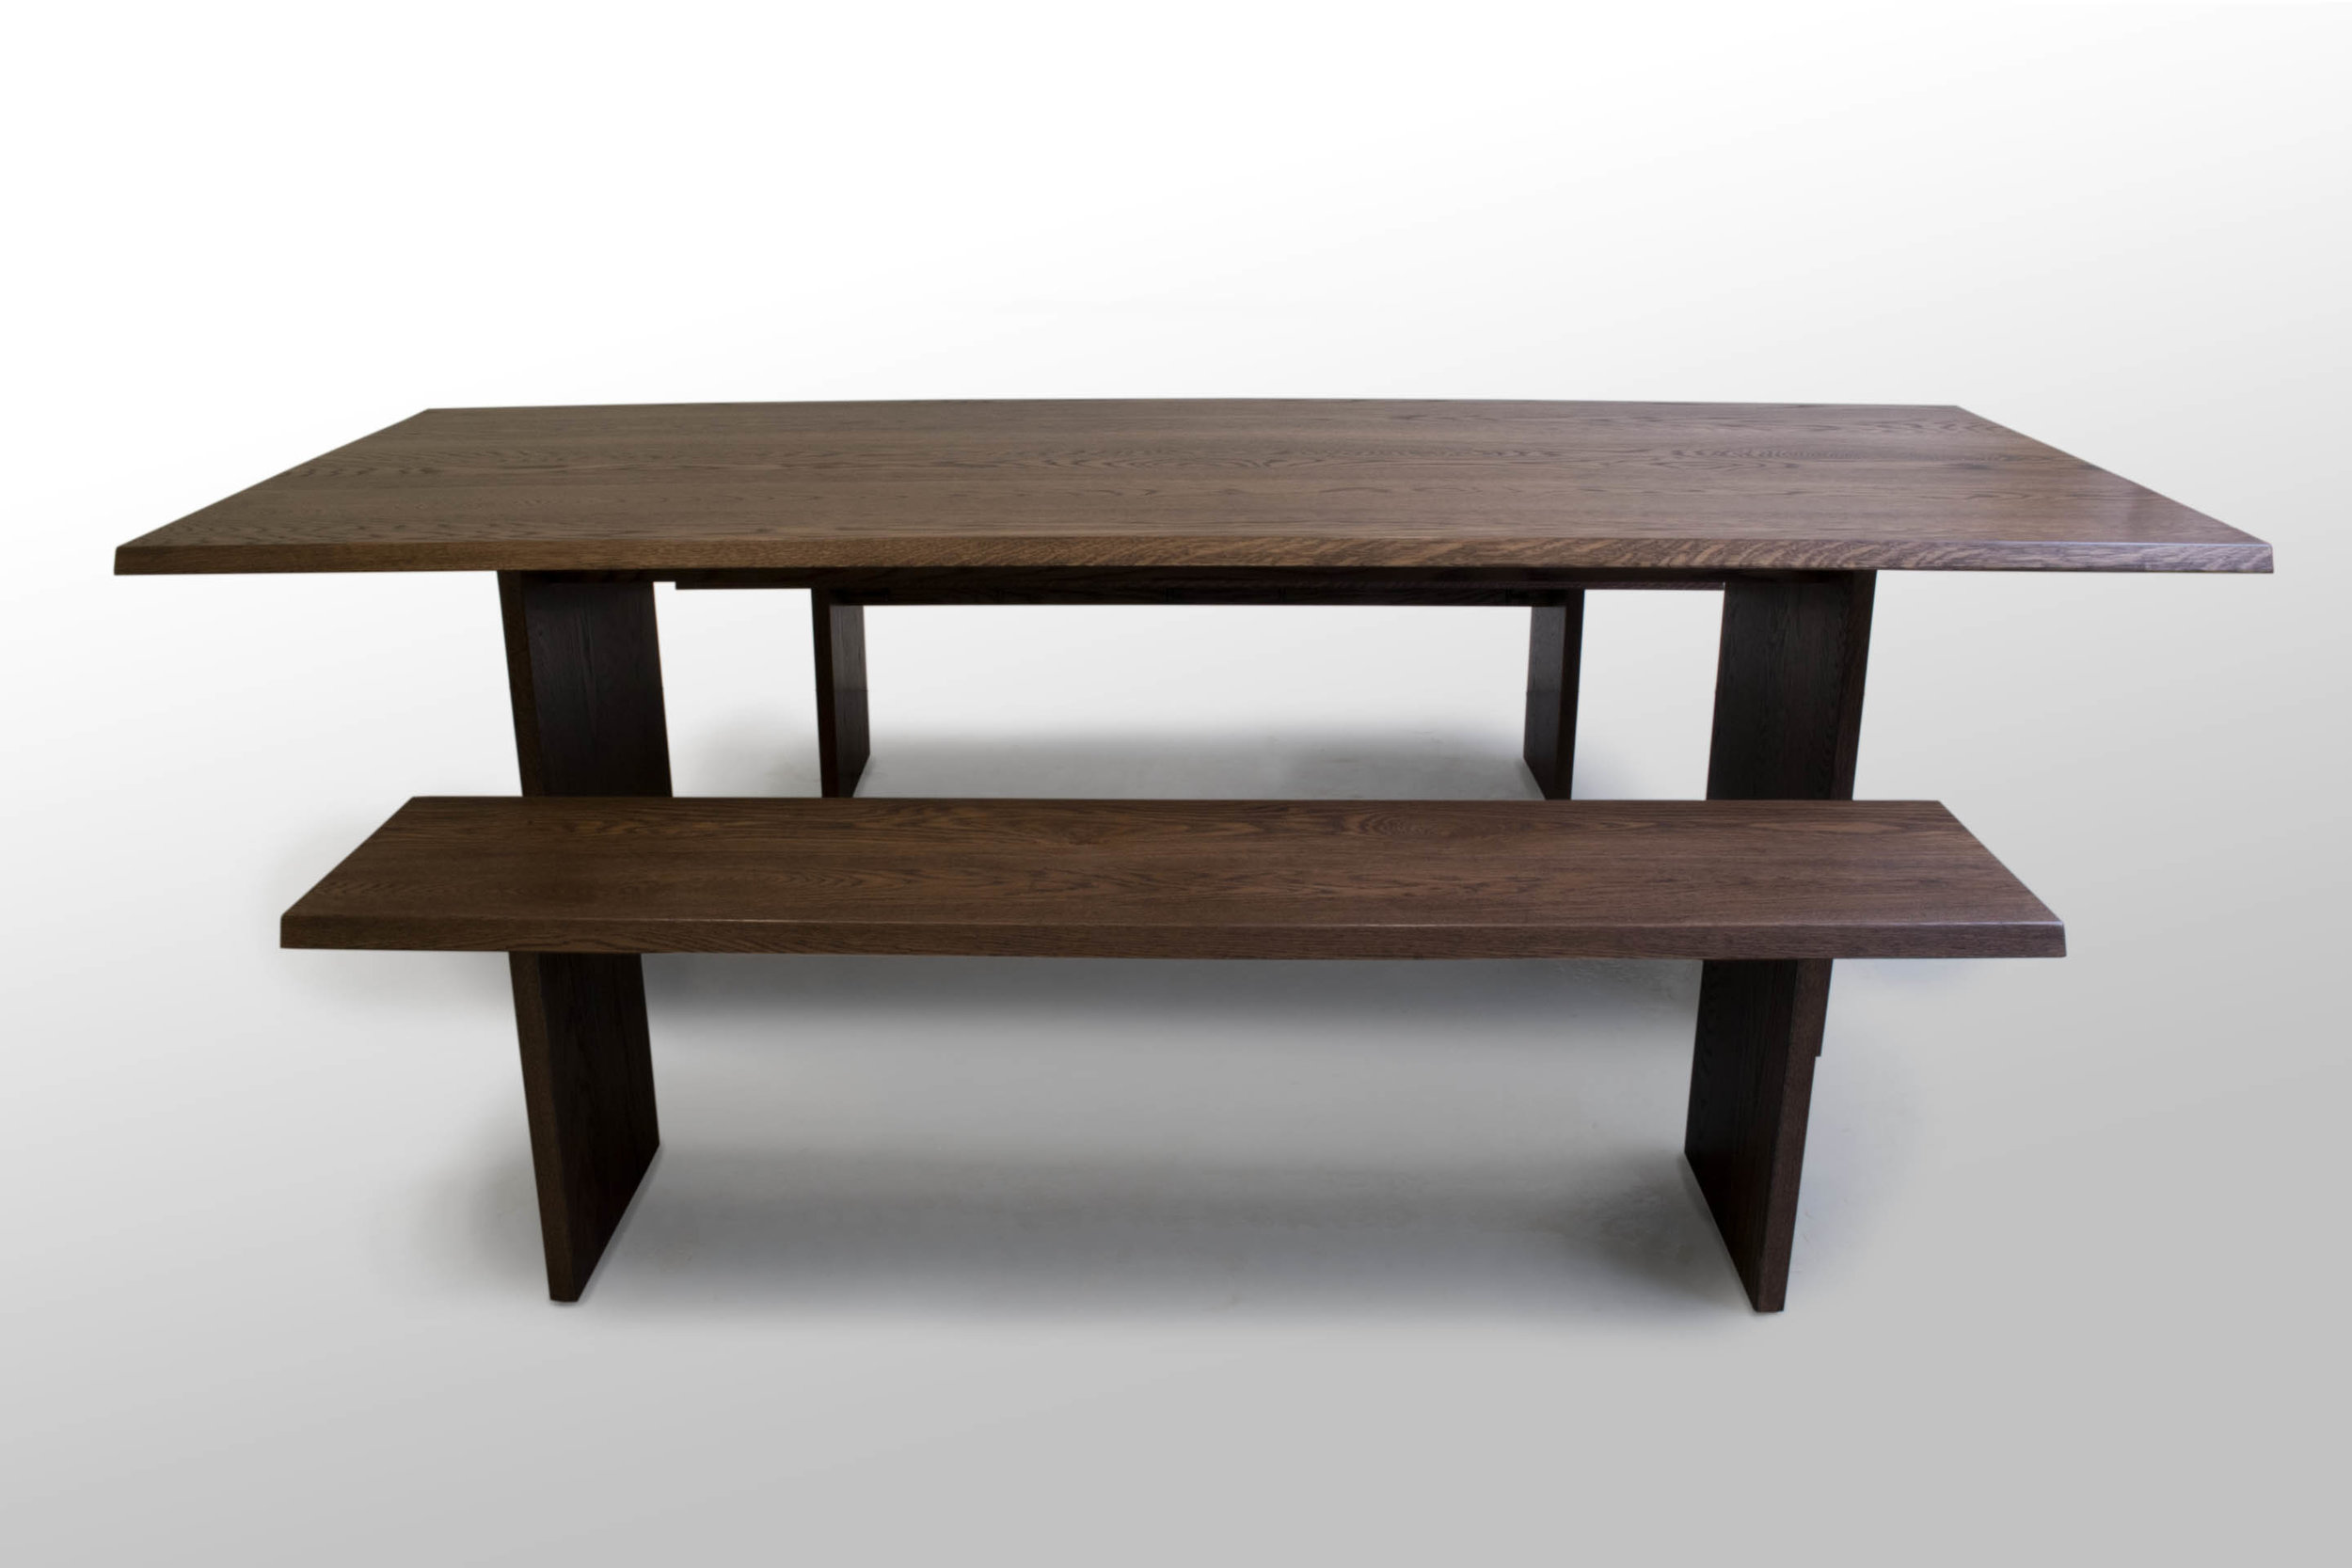 Oak table with benches4.jpg